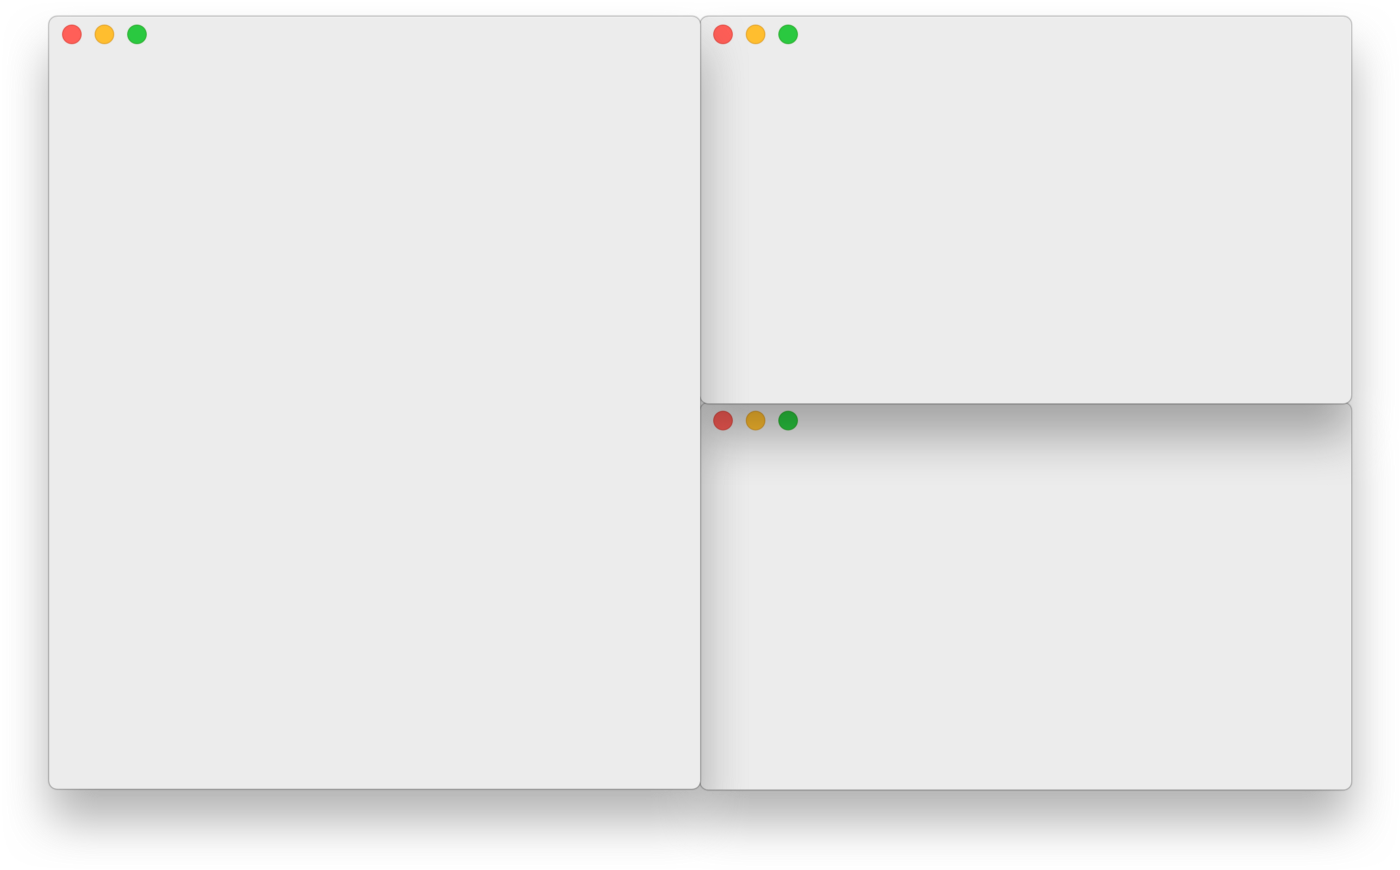 Am image to demonstrate how window manager can be used to organise windows